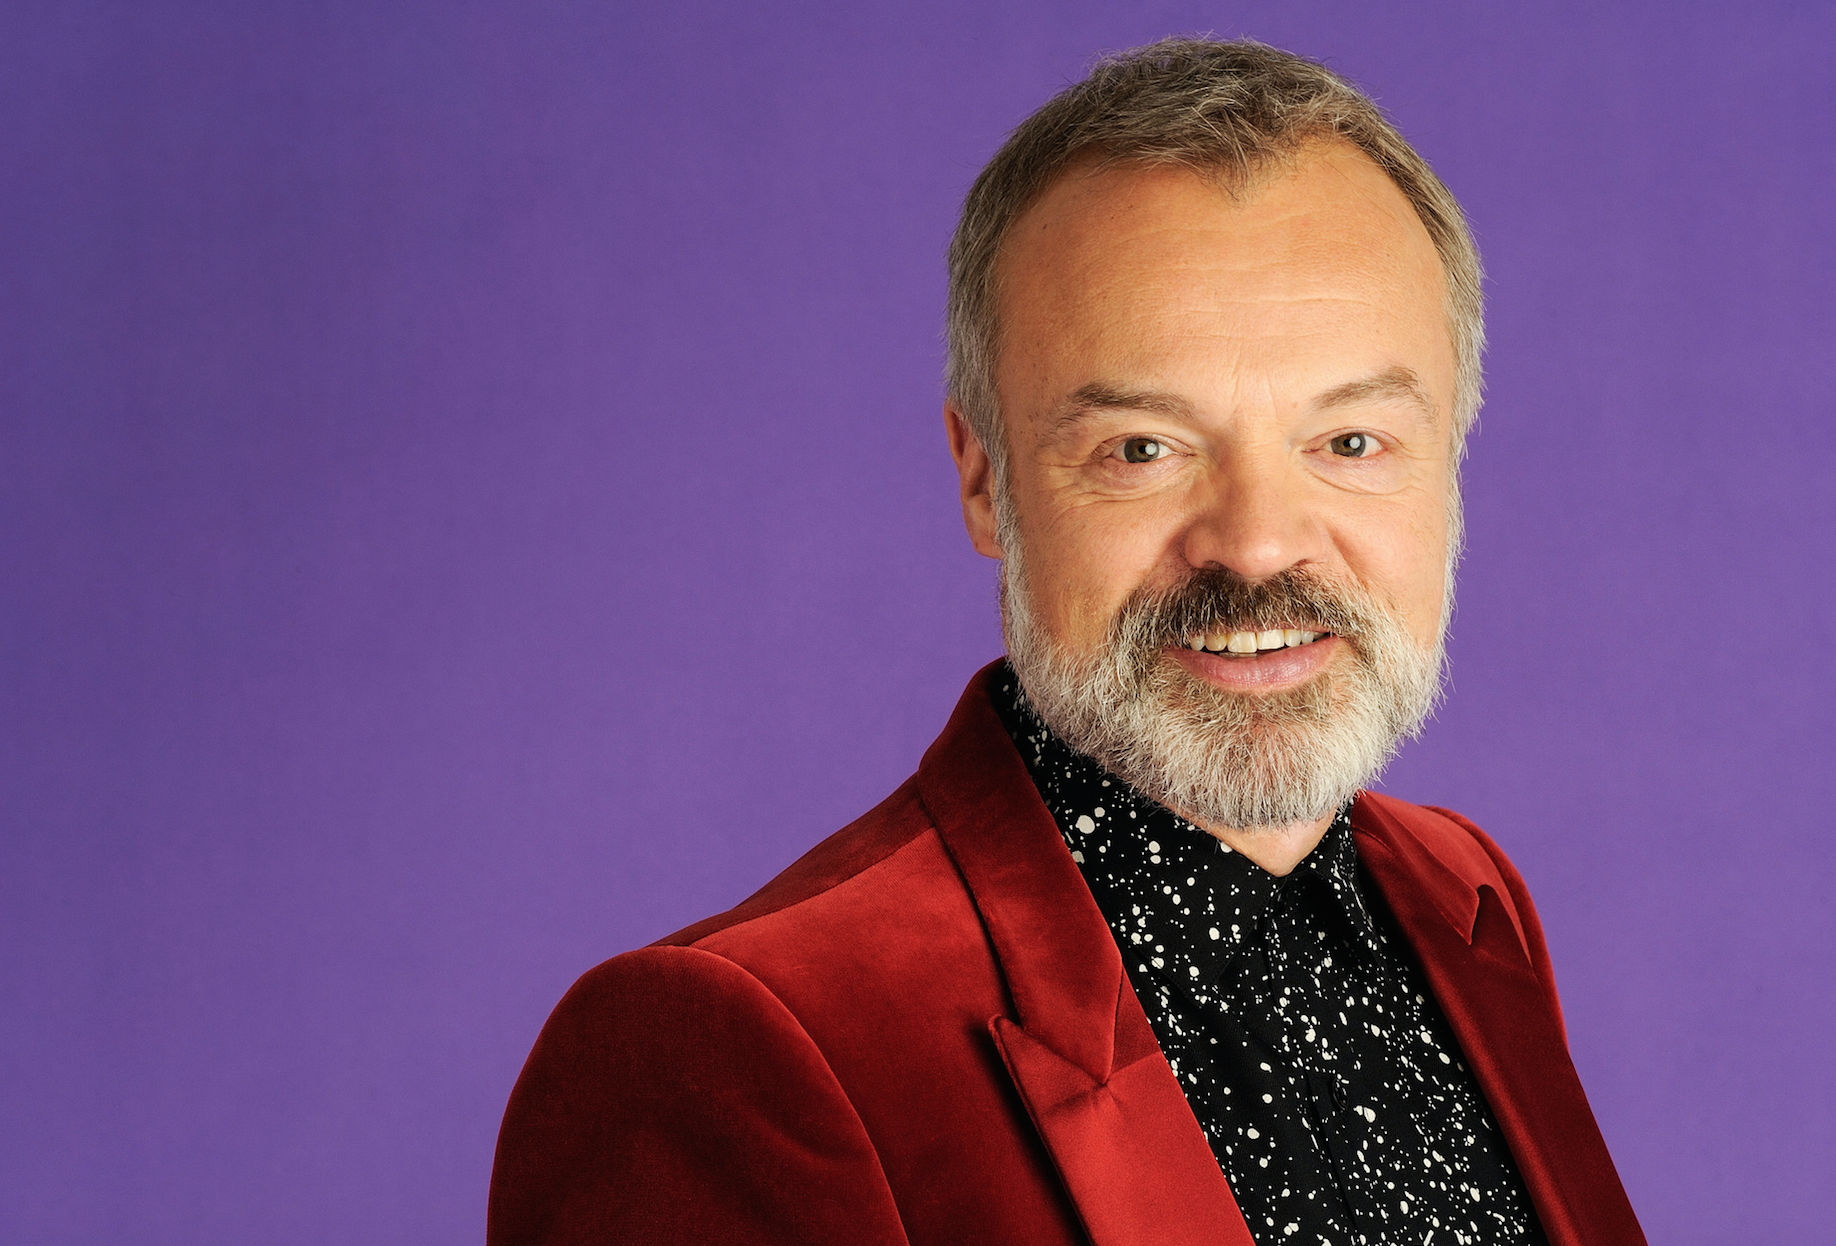 Cleaning ladies mrs overall on the graham norton show this week and - We Move Onto His Highly Successful Chat Show Which Is Currently Airing At 10 35pm On Friday Nights On Bbc One What Makes His Show Different To Those Of